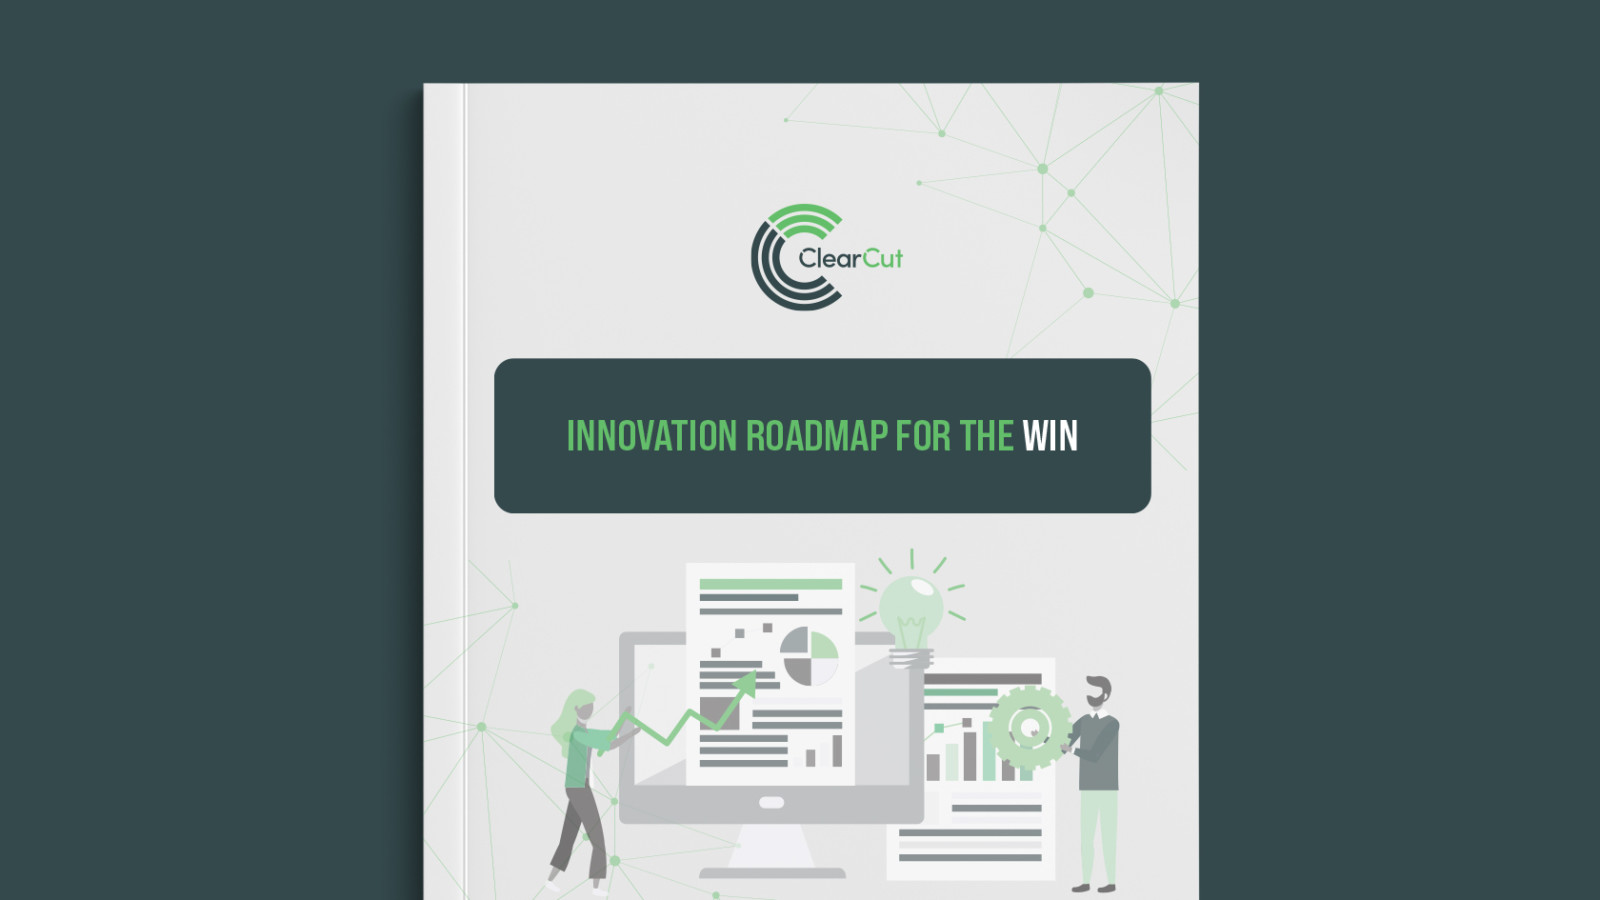 Innovation Roadmap for the Win: A Brand's Guide to New Product Success